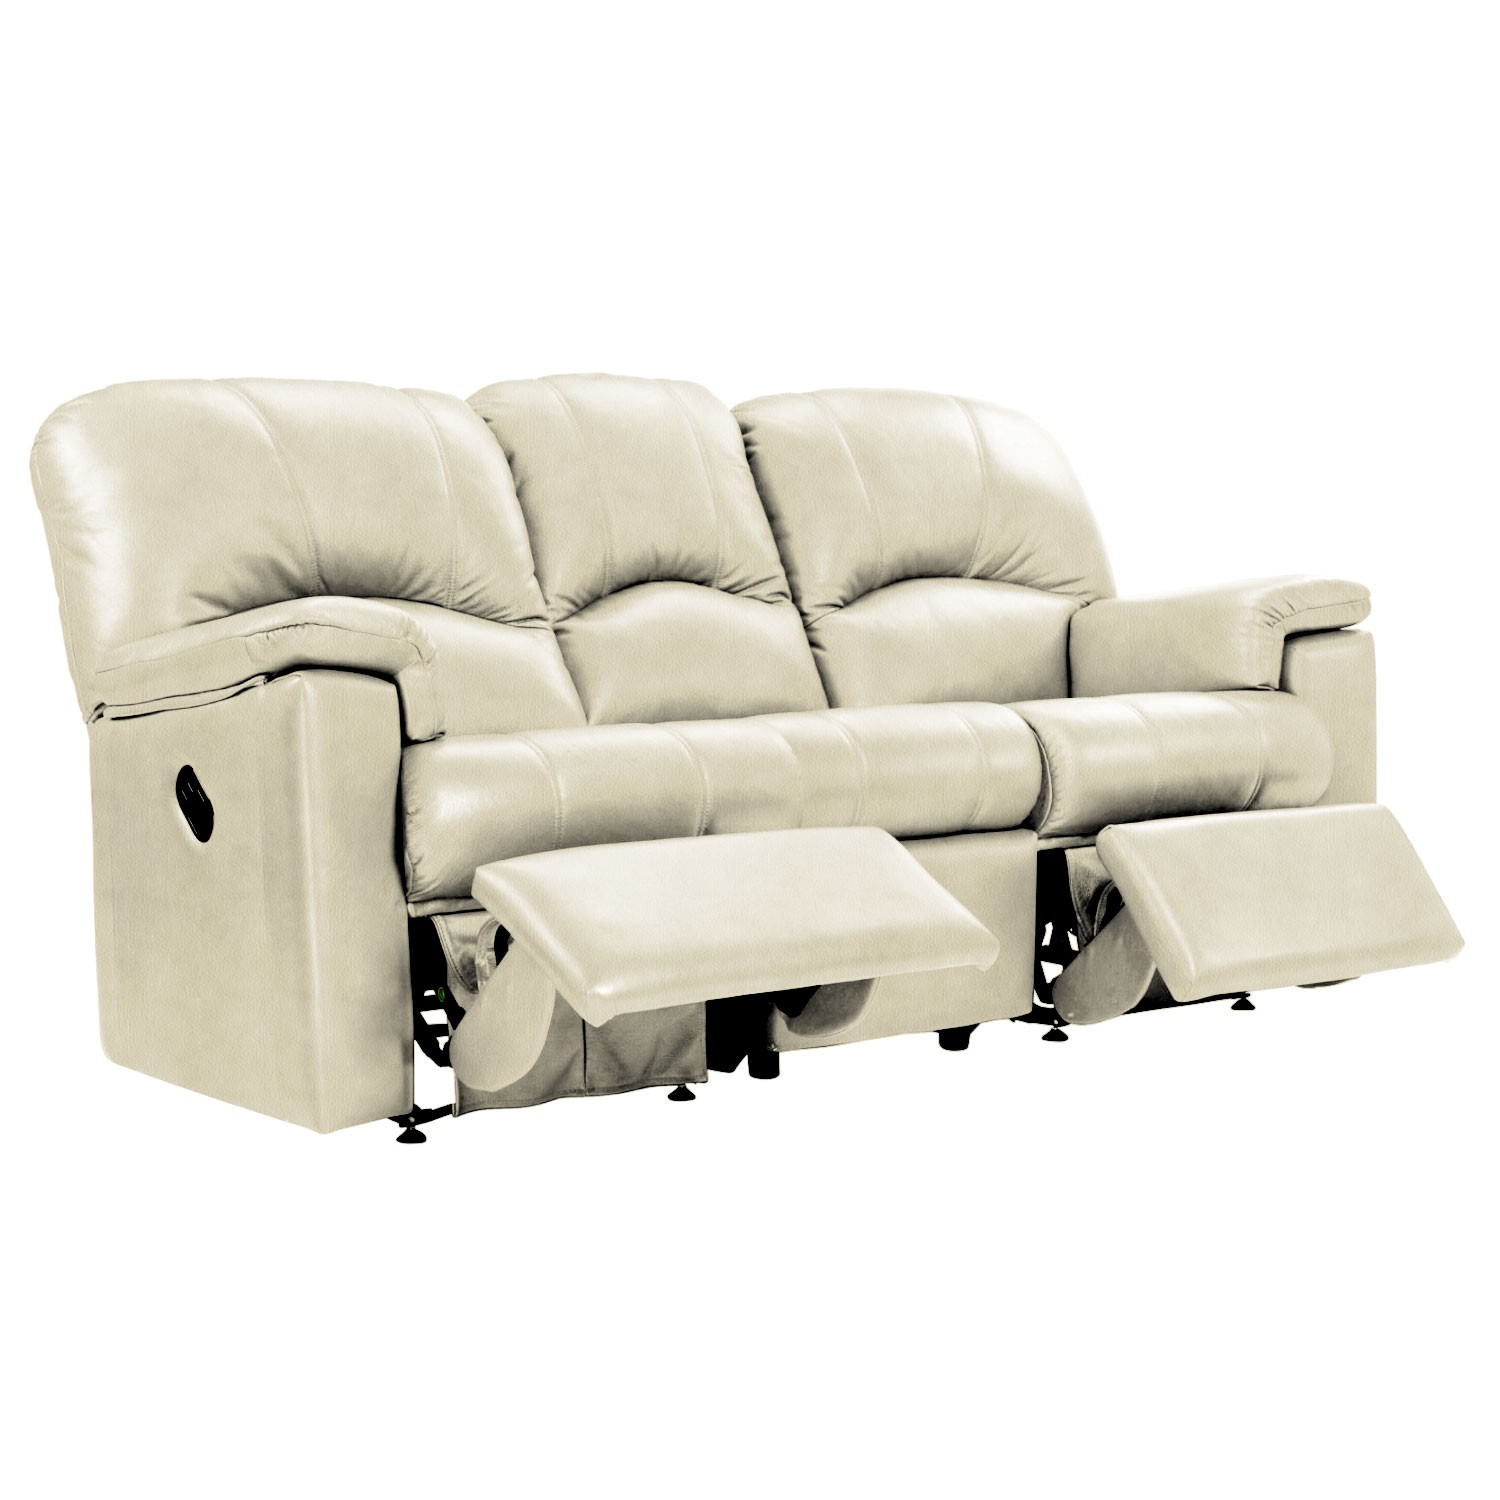 G Plan Chloe Three Seater Double Recliner Sofa